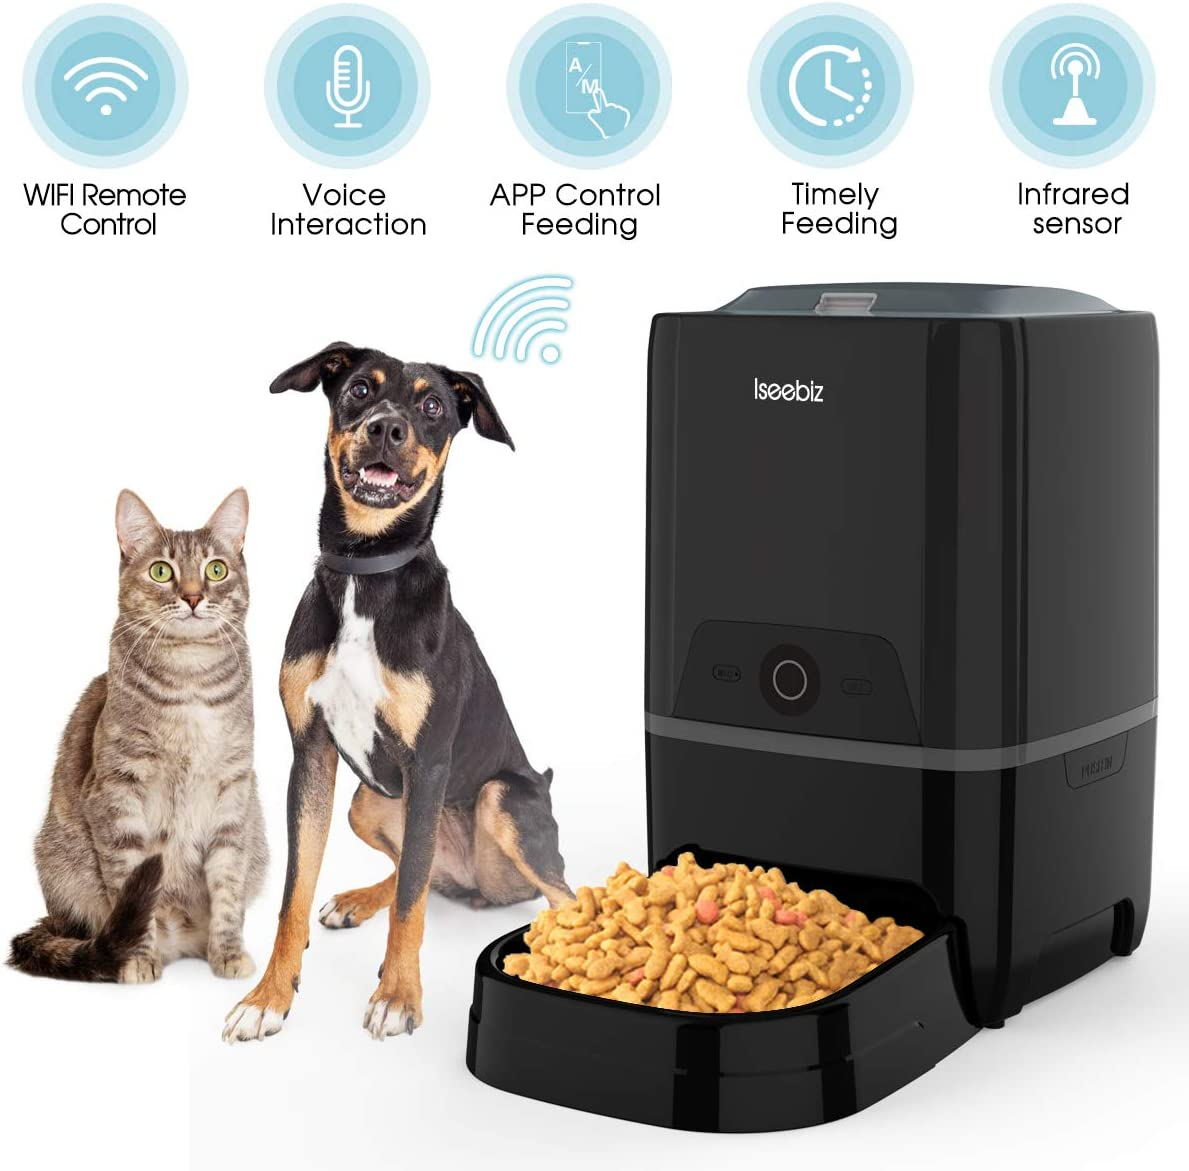 Iseebiz Automatic Cat Feeder 5L Smart Feeder Pet Food Dispenser App Control,Voice Recording,Timer Programmable, Portion Control, IR Detect, 8 Meals Per Day for Pet